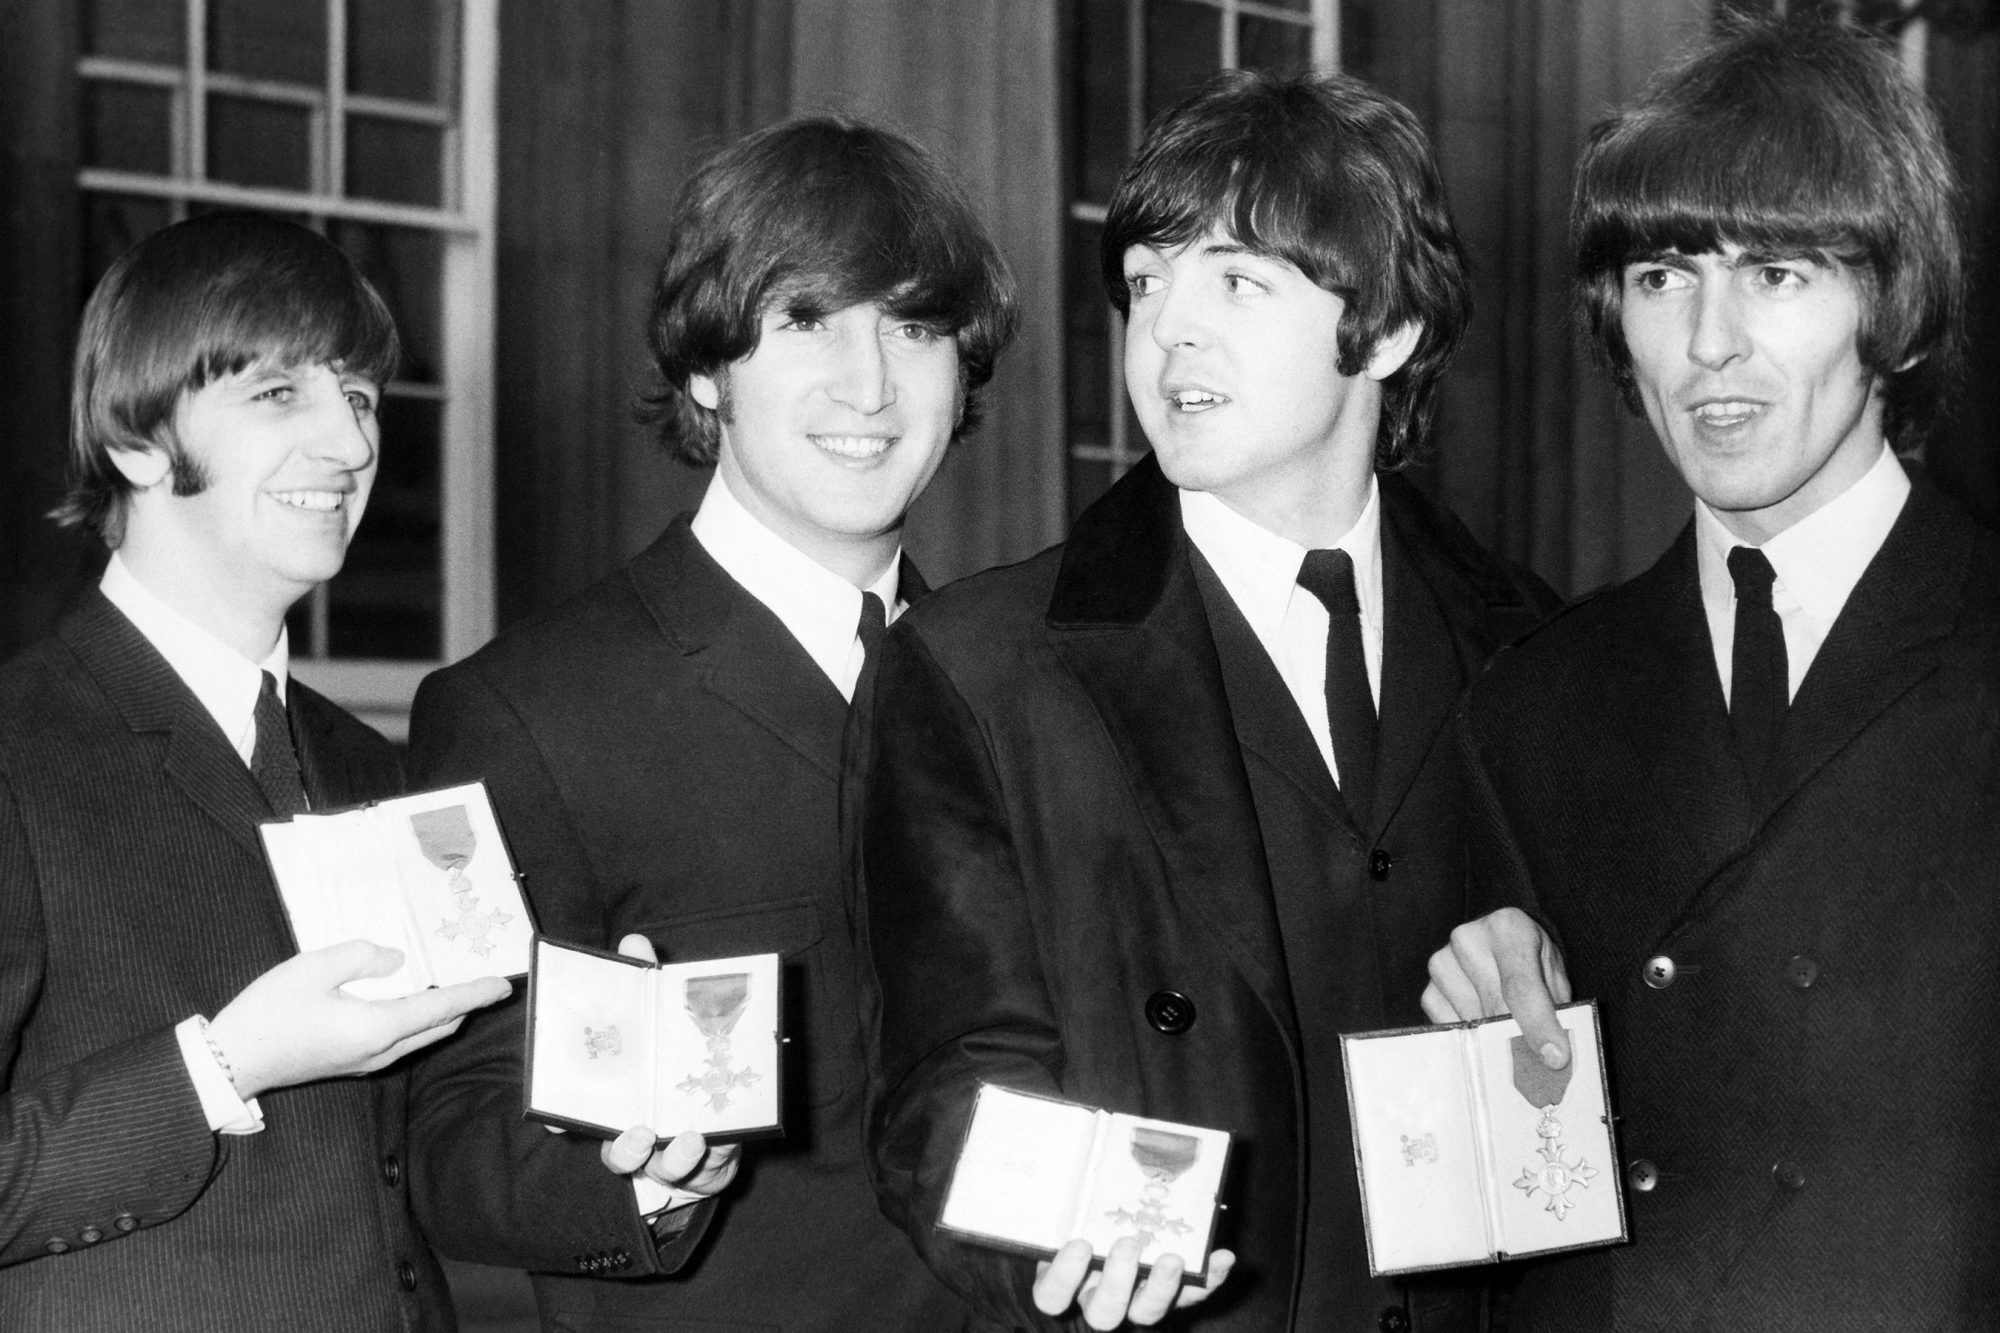 Portrait Of The Beatles With Their Mbe At London In England On October 26Th 1965